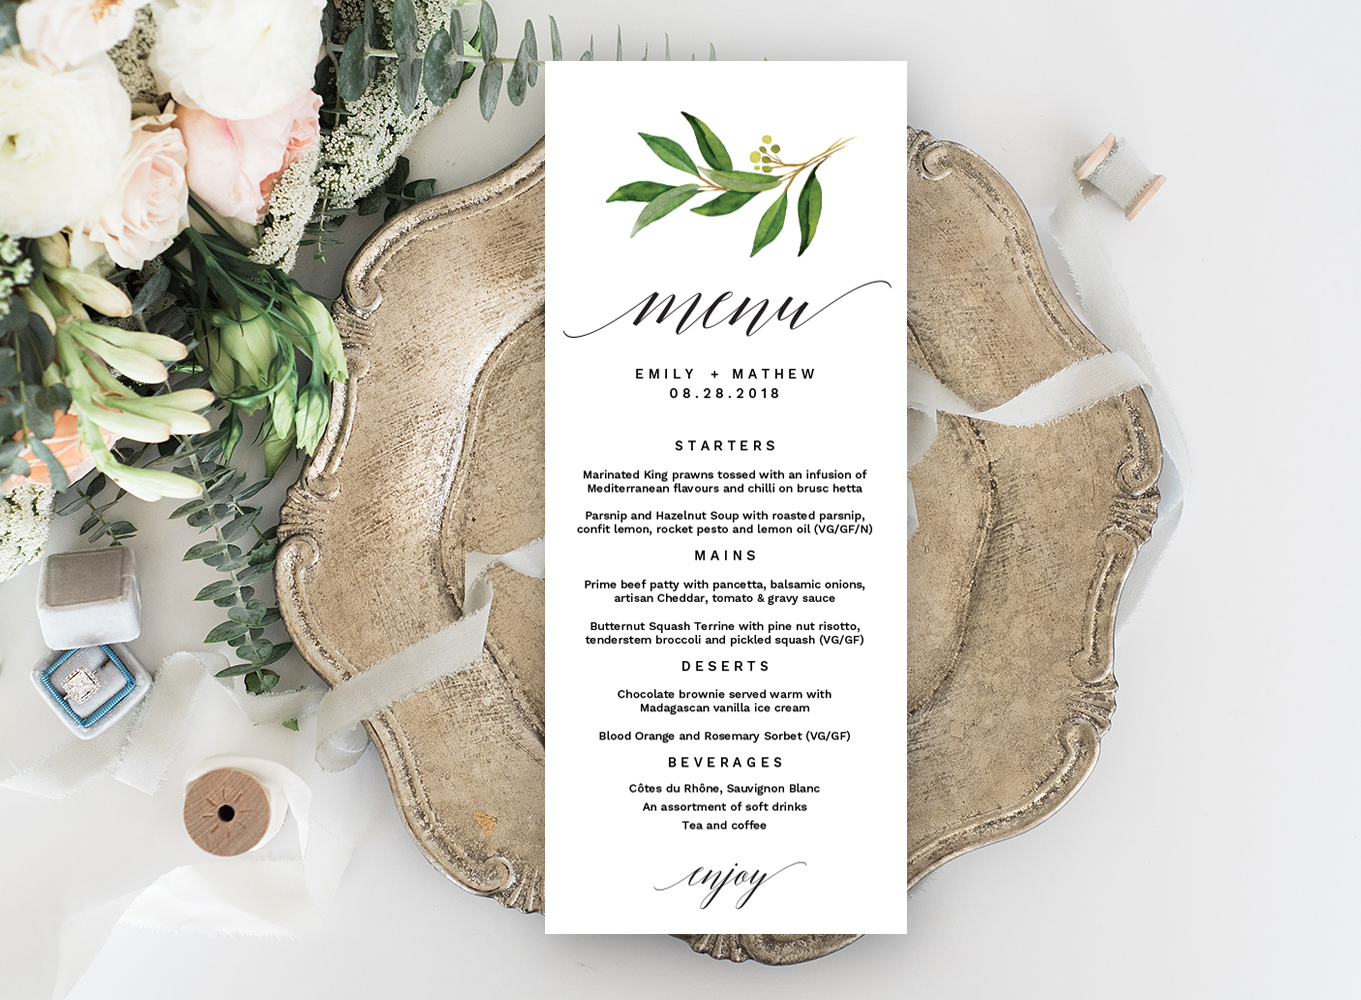 Wedding Menu Template.Wedding Menu Editable Template Free Print Templates Templates